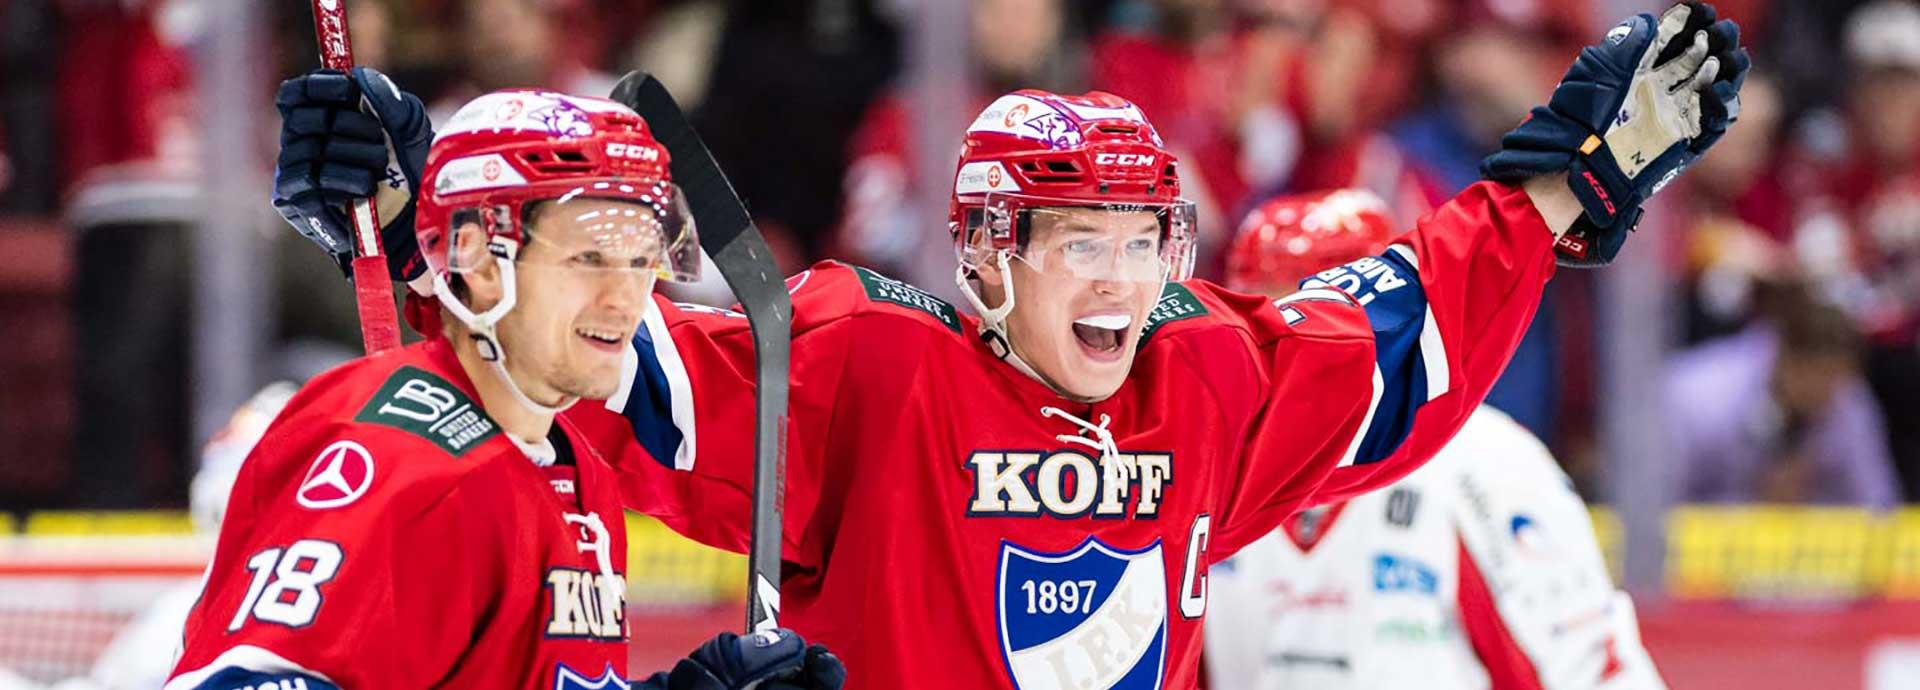 The fine art of leading teams – HIFK captains share their insights